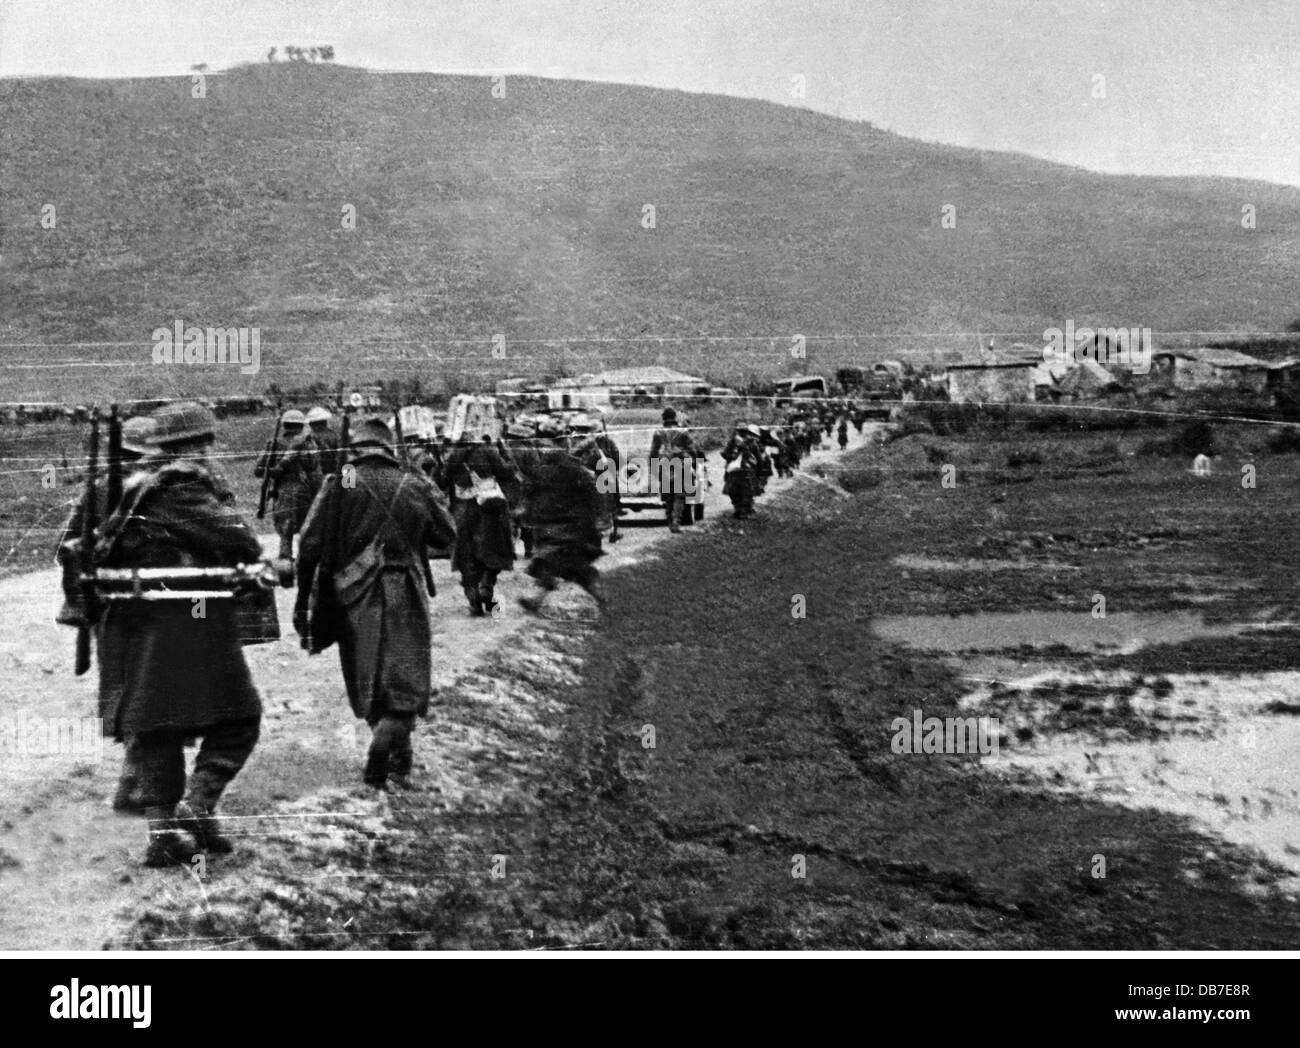 Greek Civil War 1946 - 1949, government troops on the way to the front along the road from Yannina to Konitsa, 12.1.1948, - Stock Image